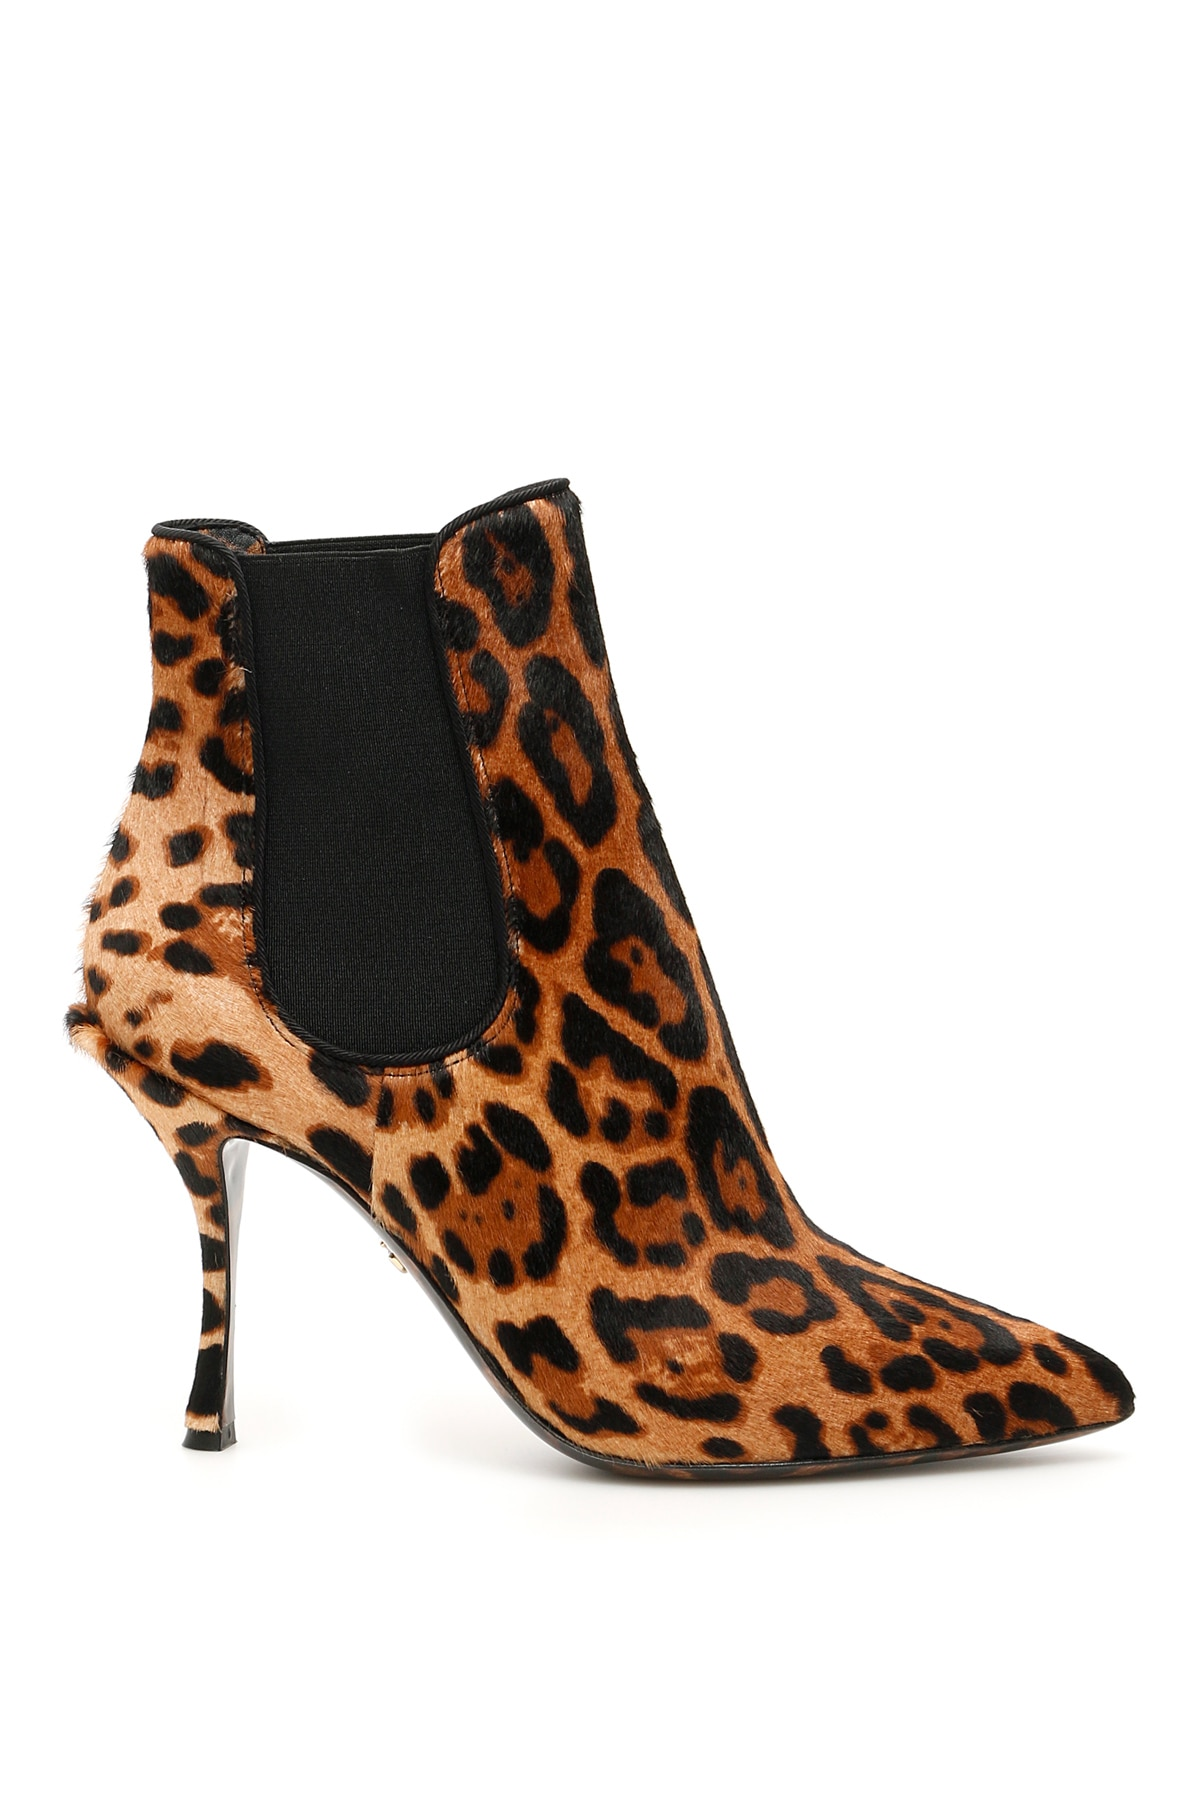 Dolce & Gabbana Animalier Lori Ankle Boots 36 Beige, Black, Brown Leather